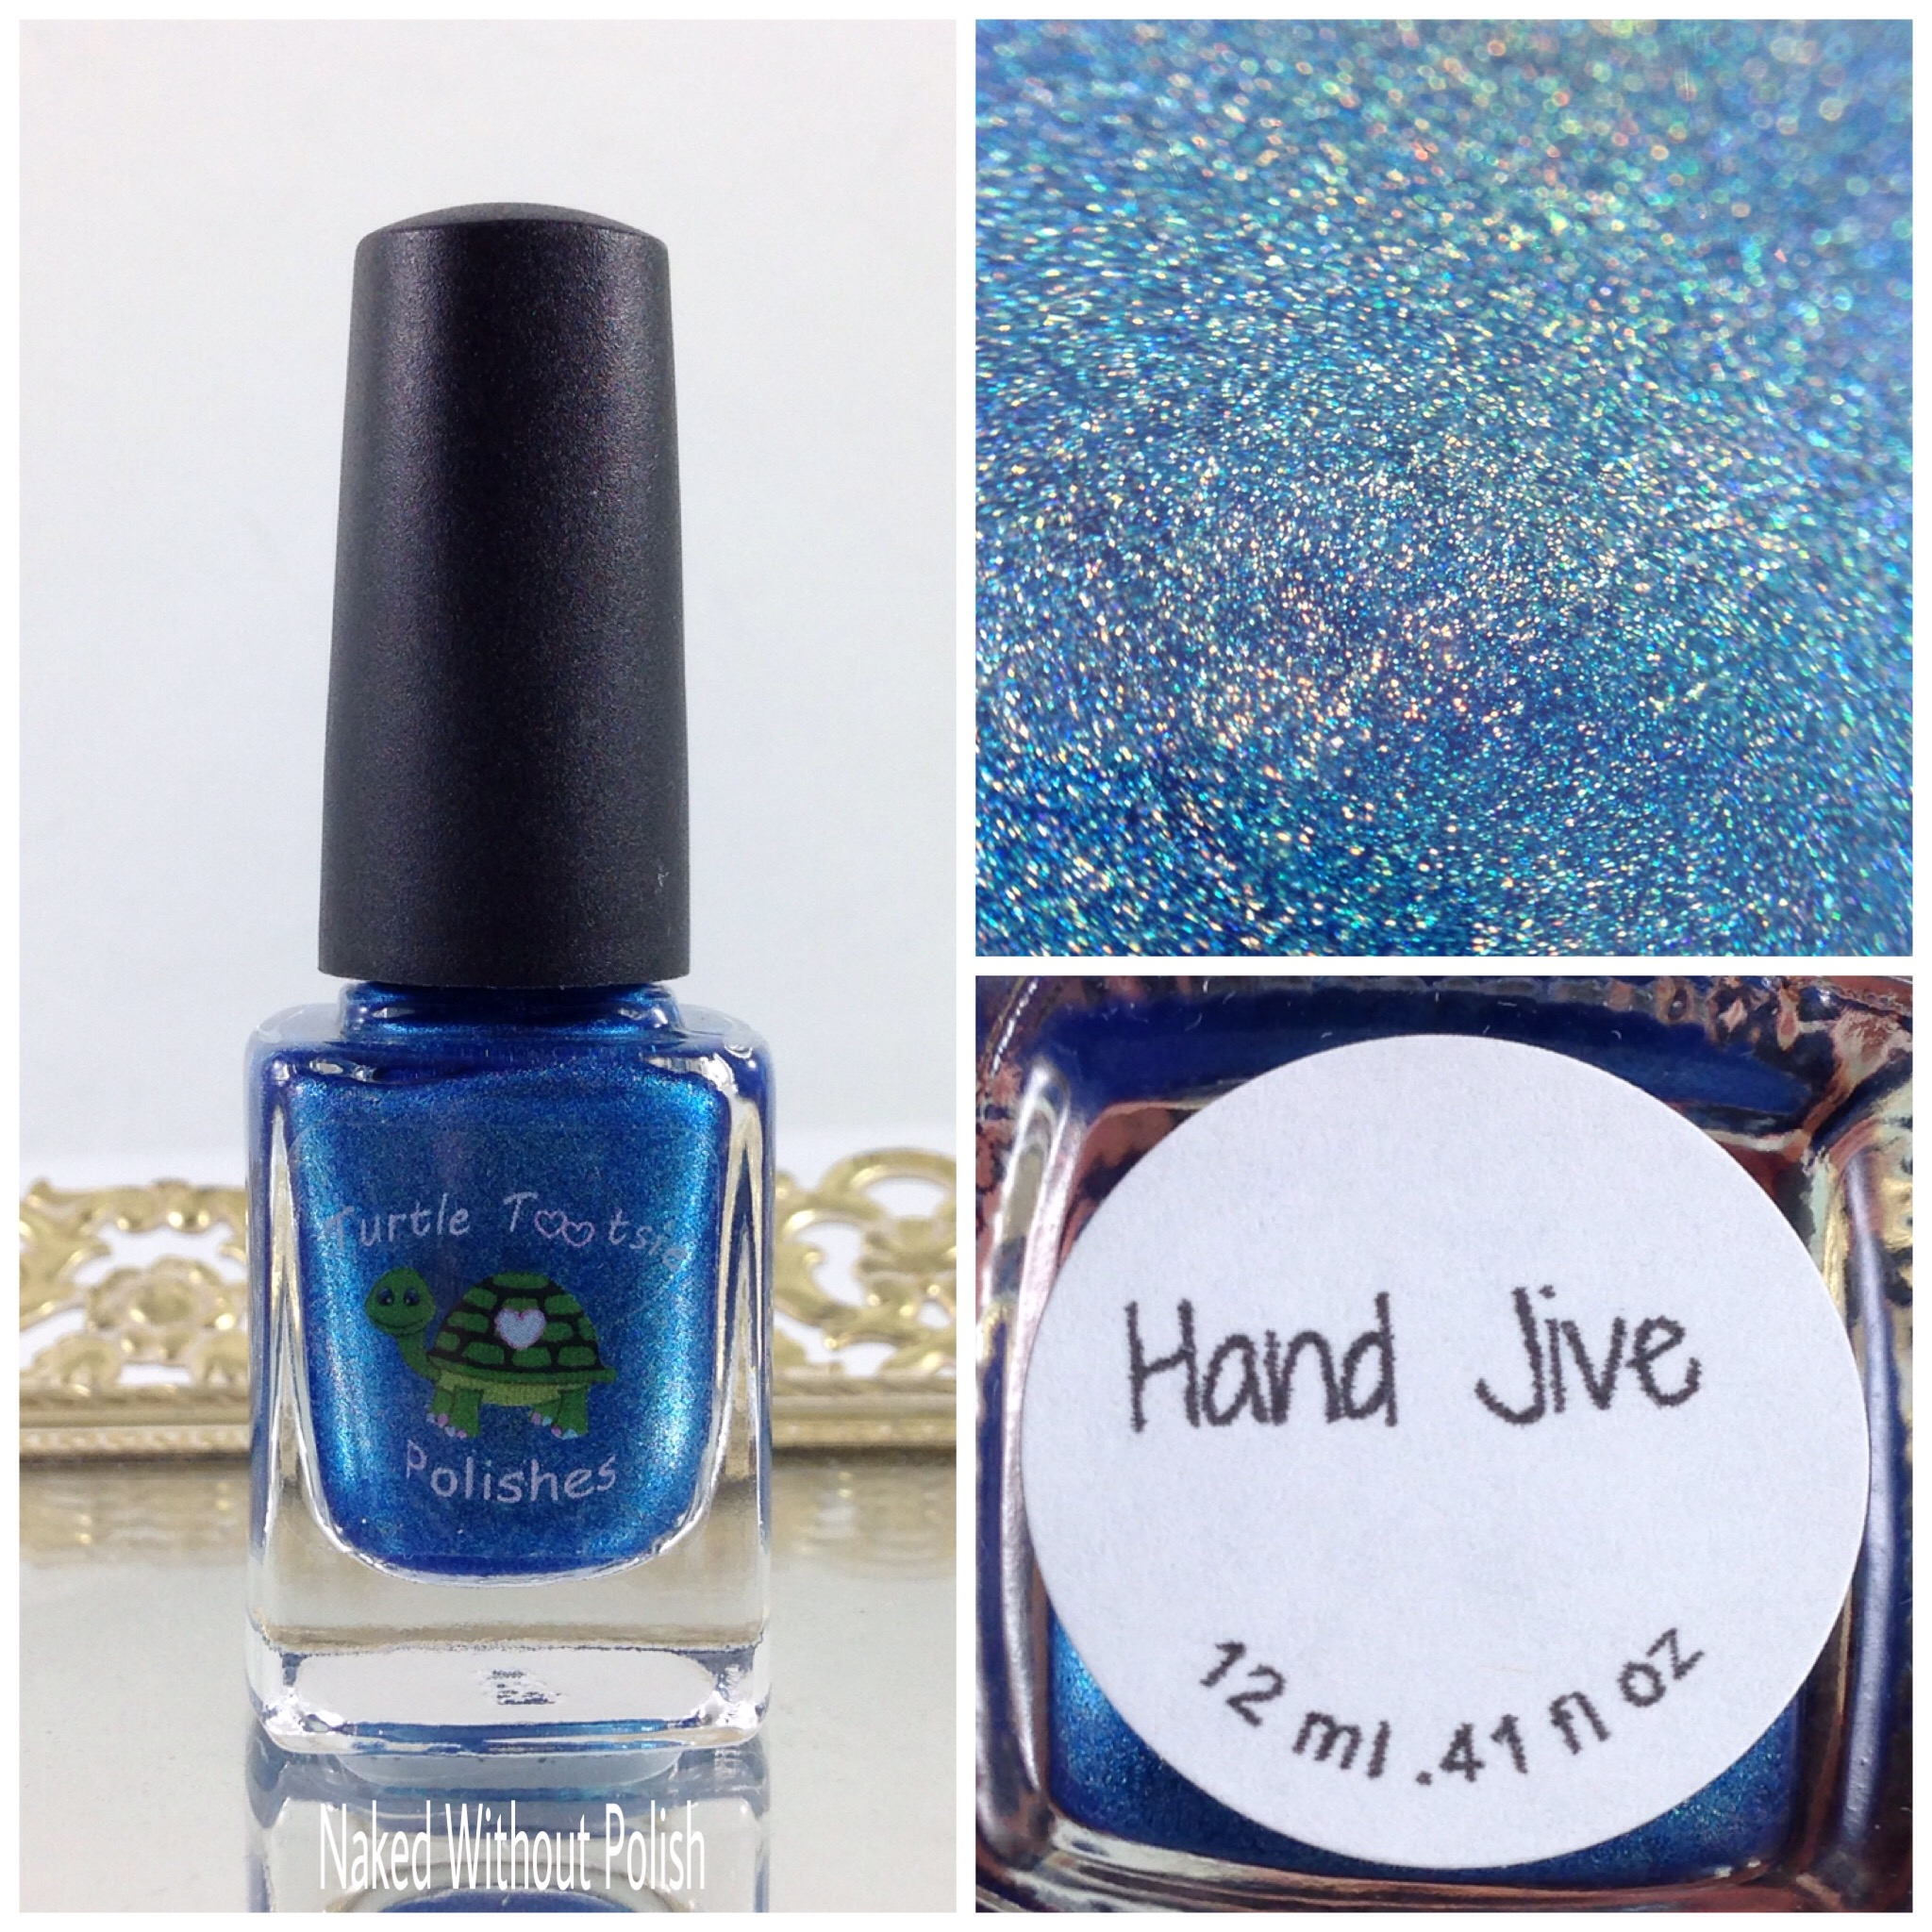 Turtle-Tootsie-Polishes-Hand-Jive-1